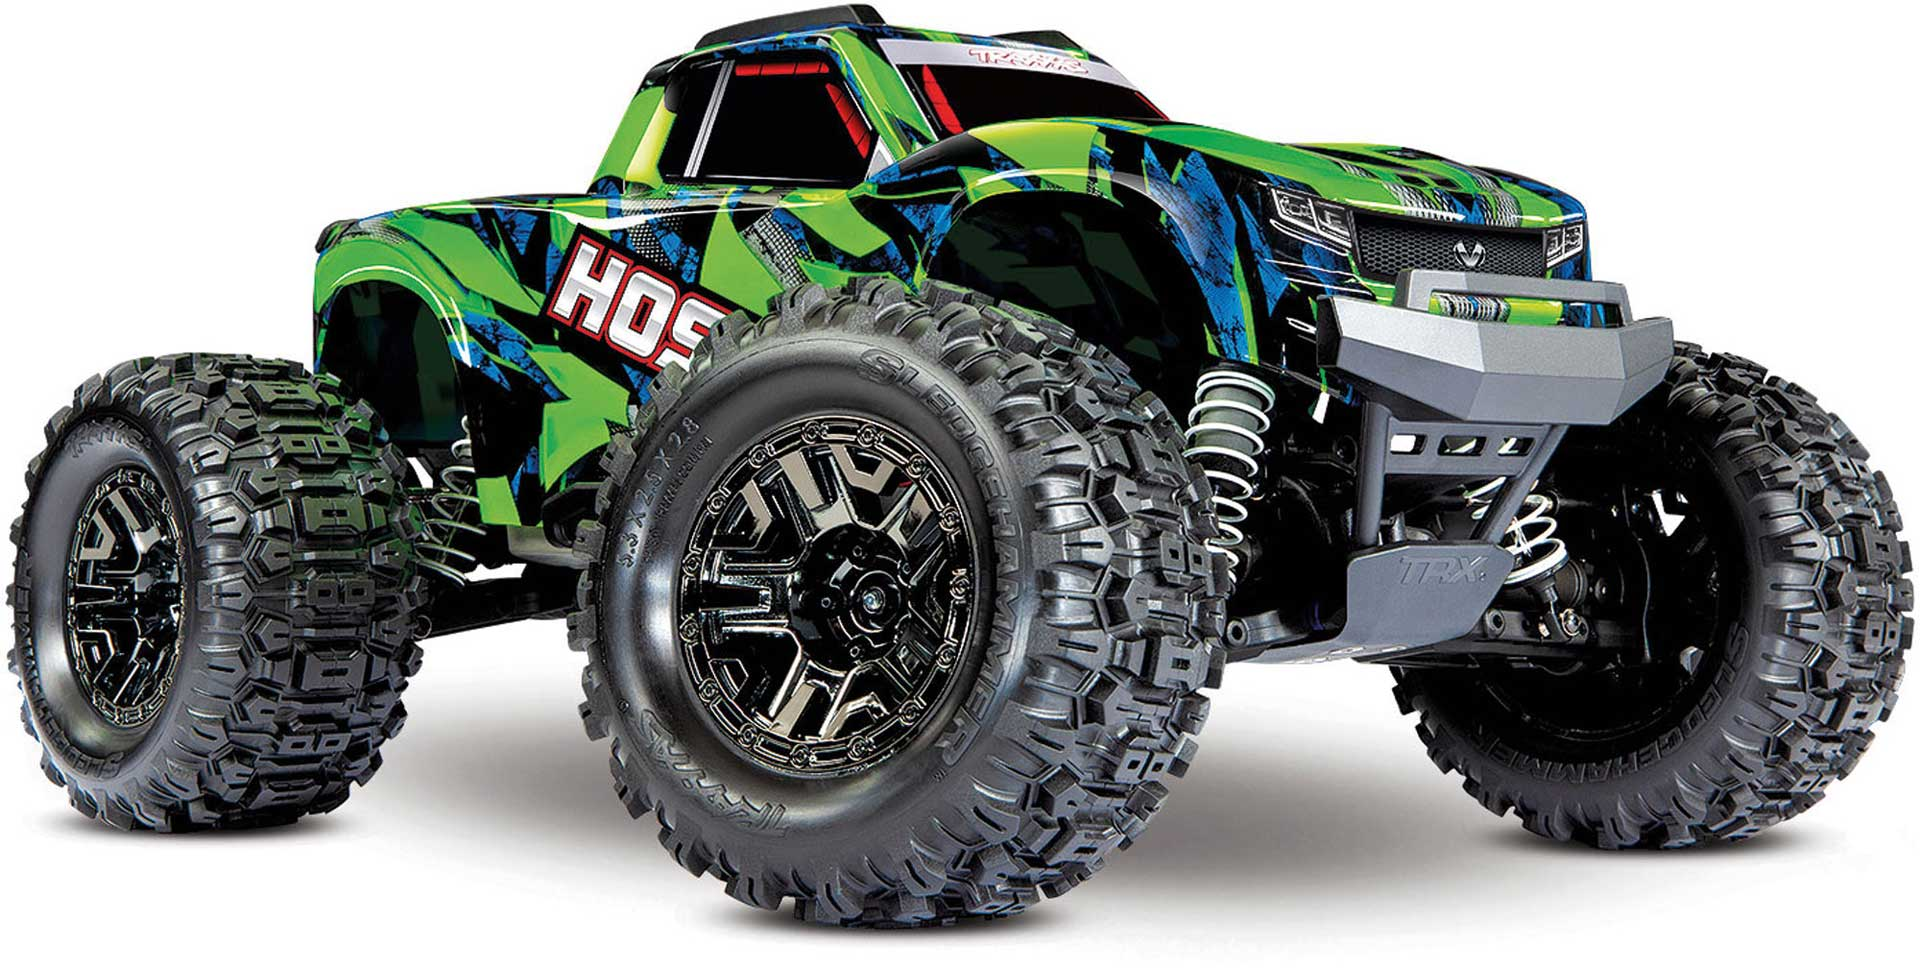 TRAXXAS HOSS 4x4 VXL 3S 1/10 Monster Truck Green Brushless without battery/charger